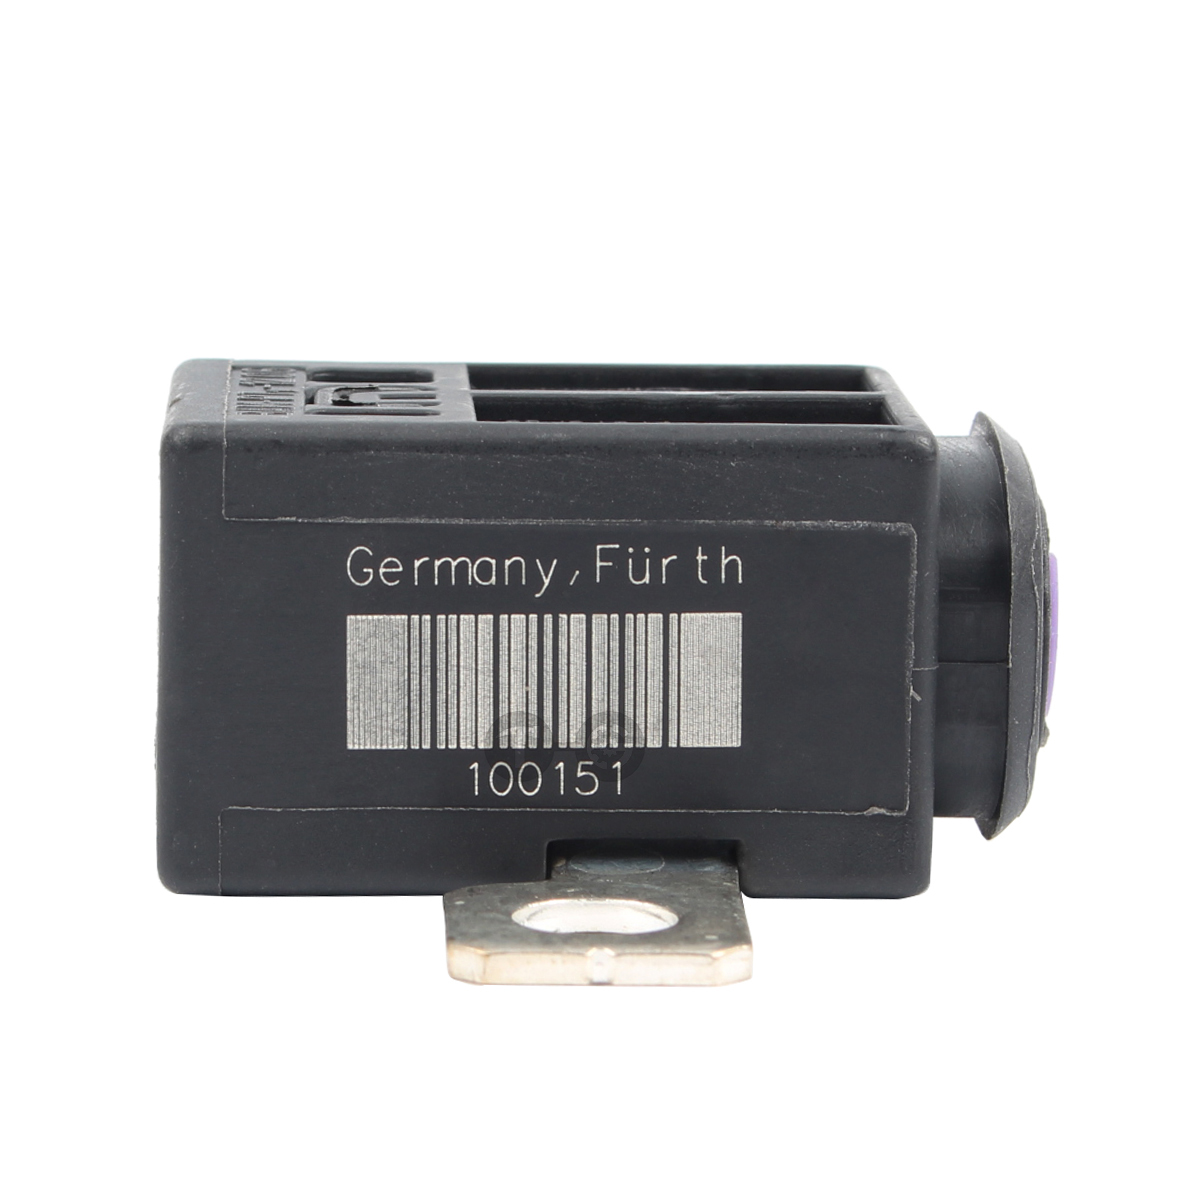 New Battery Fuse Overload Protection Trip For Bacb13 720001 Ae86 Box 4f0915457 8p0937548